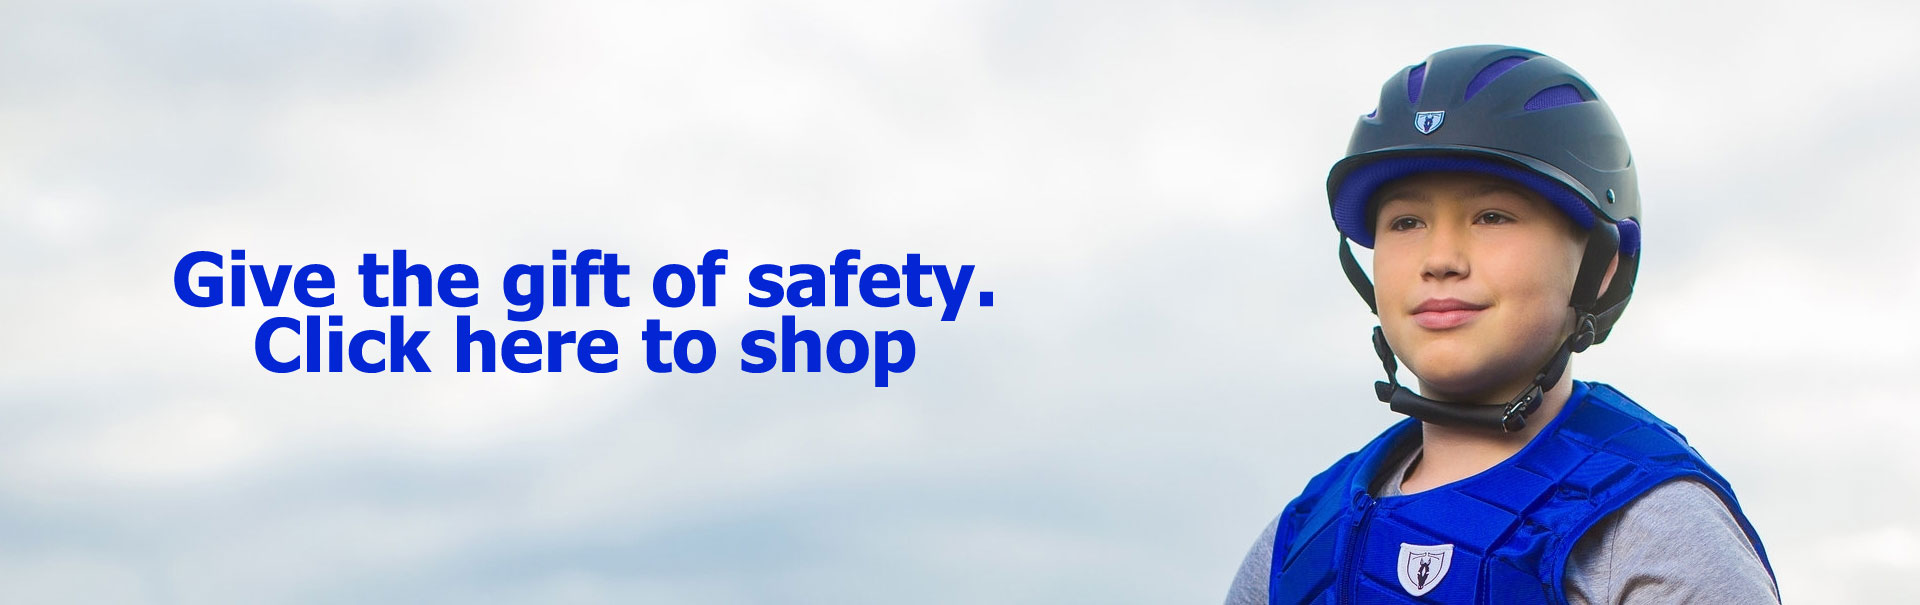 Give the gift of safety  | Tipperary Helmets